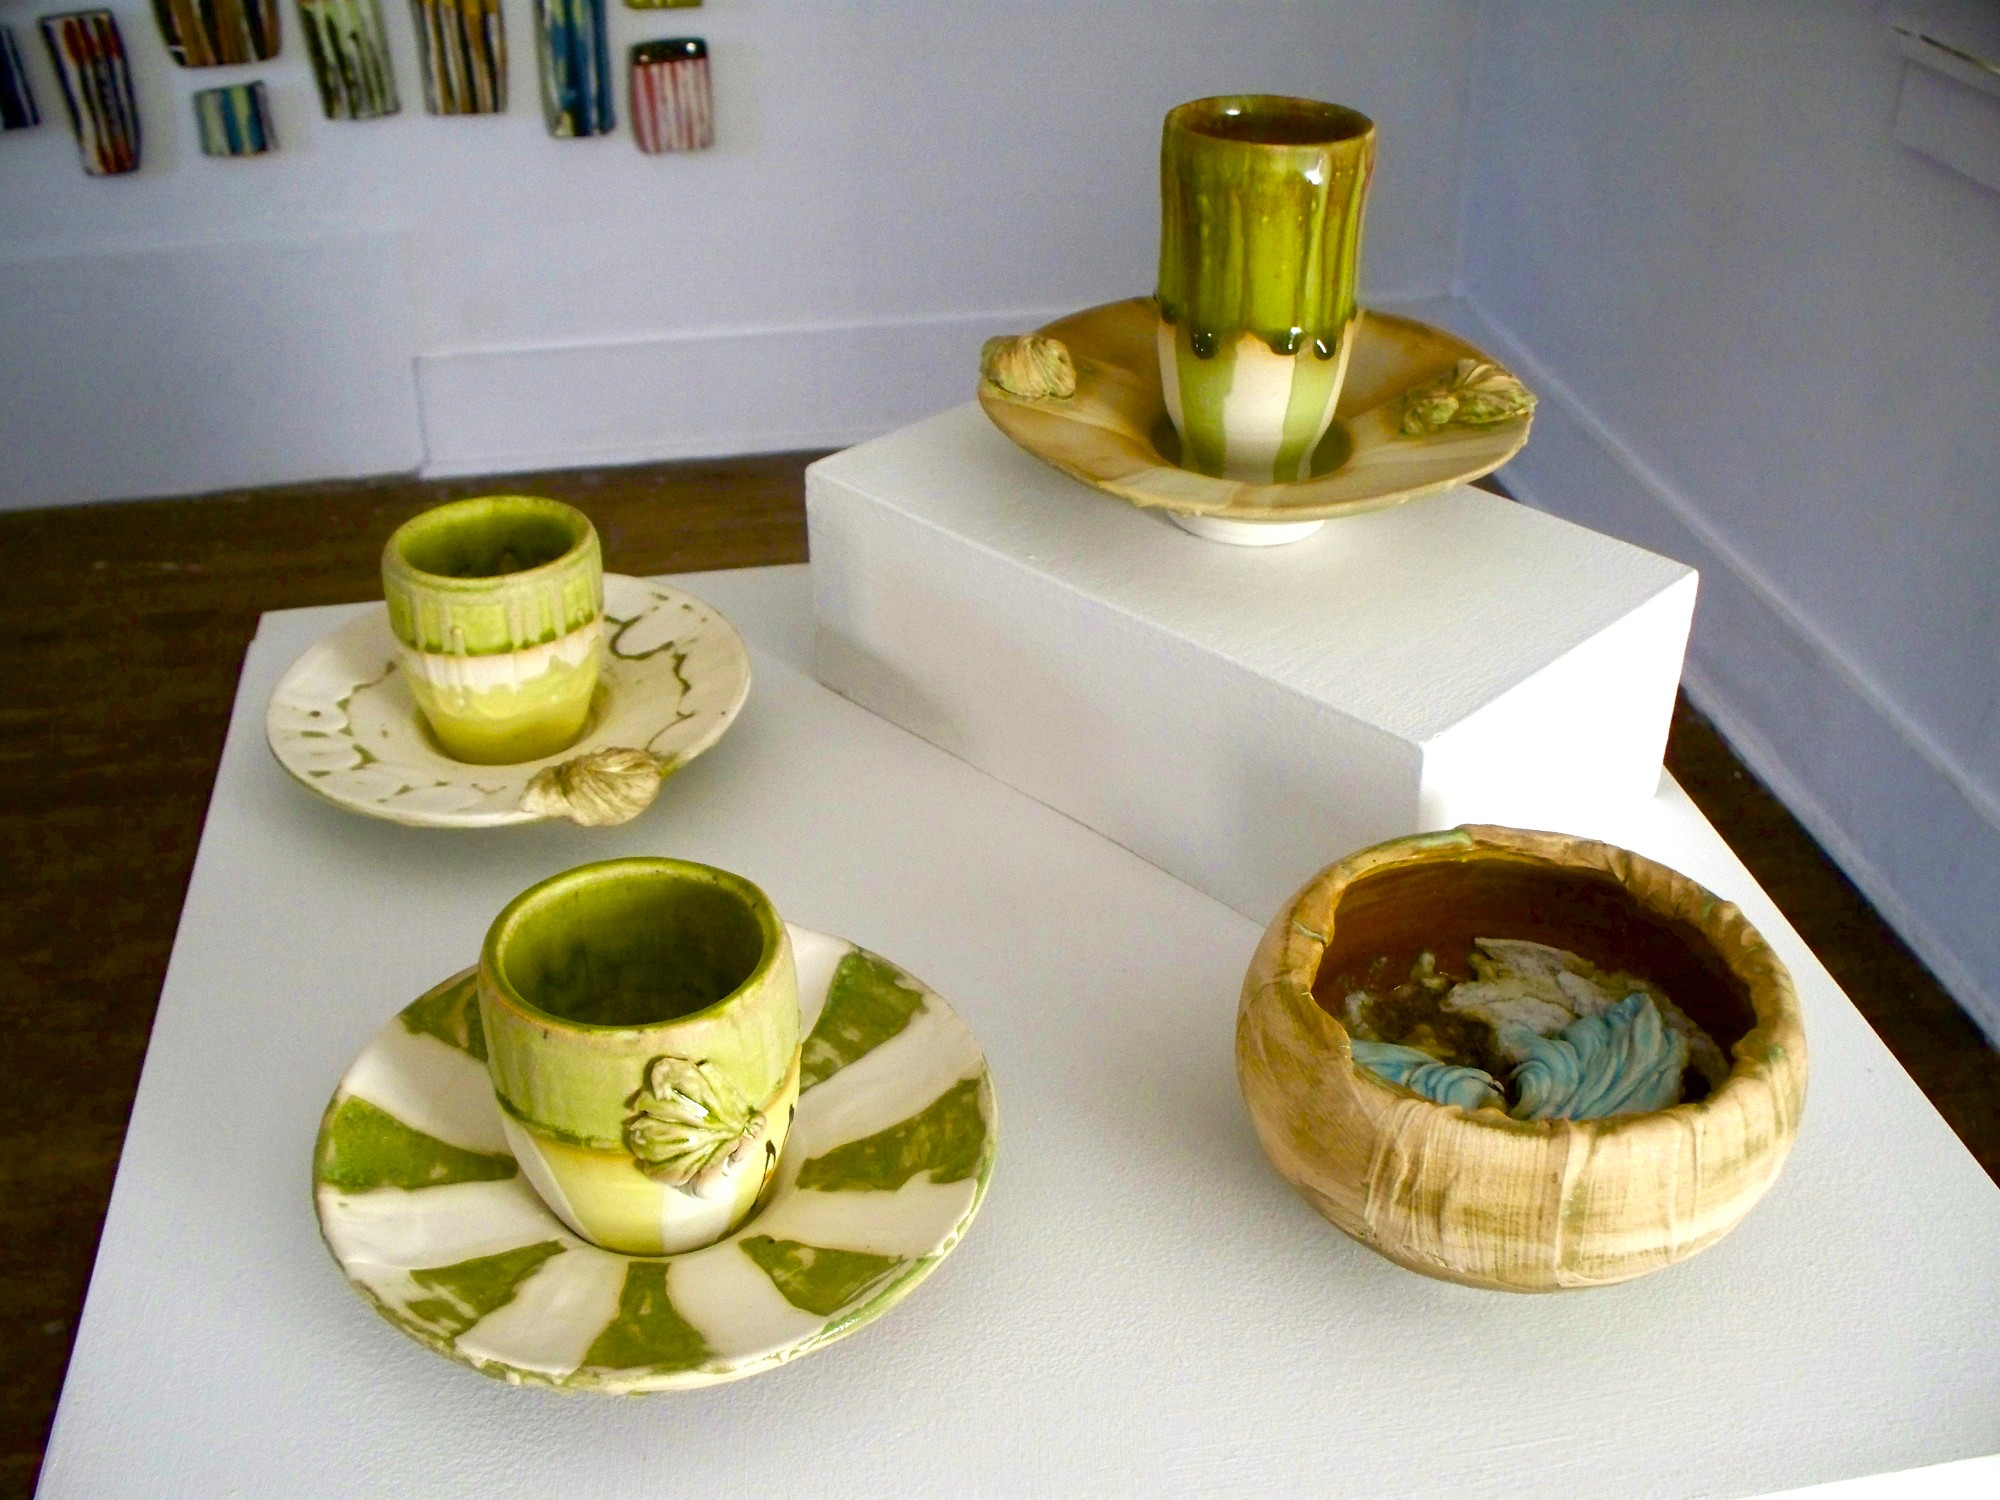 'afternoon break',  tea cups/saucers and 'sugar bowl', porcelain, stoneware, colored slips, glaze, glass, silica sand, dimensions variable, 2009